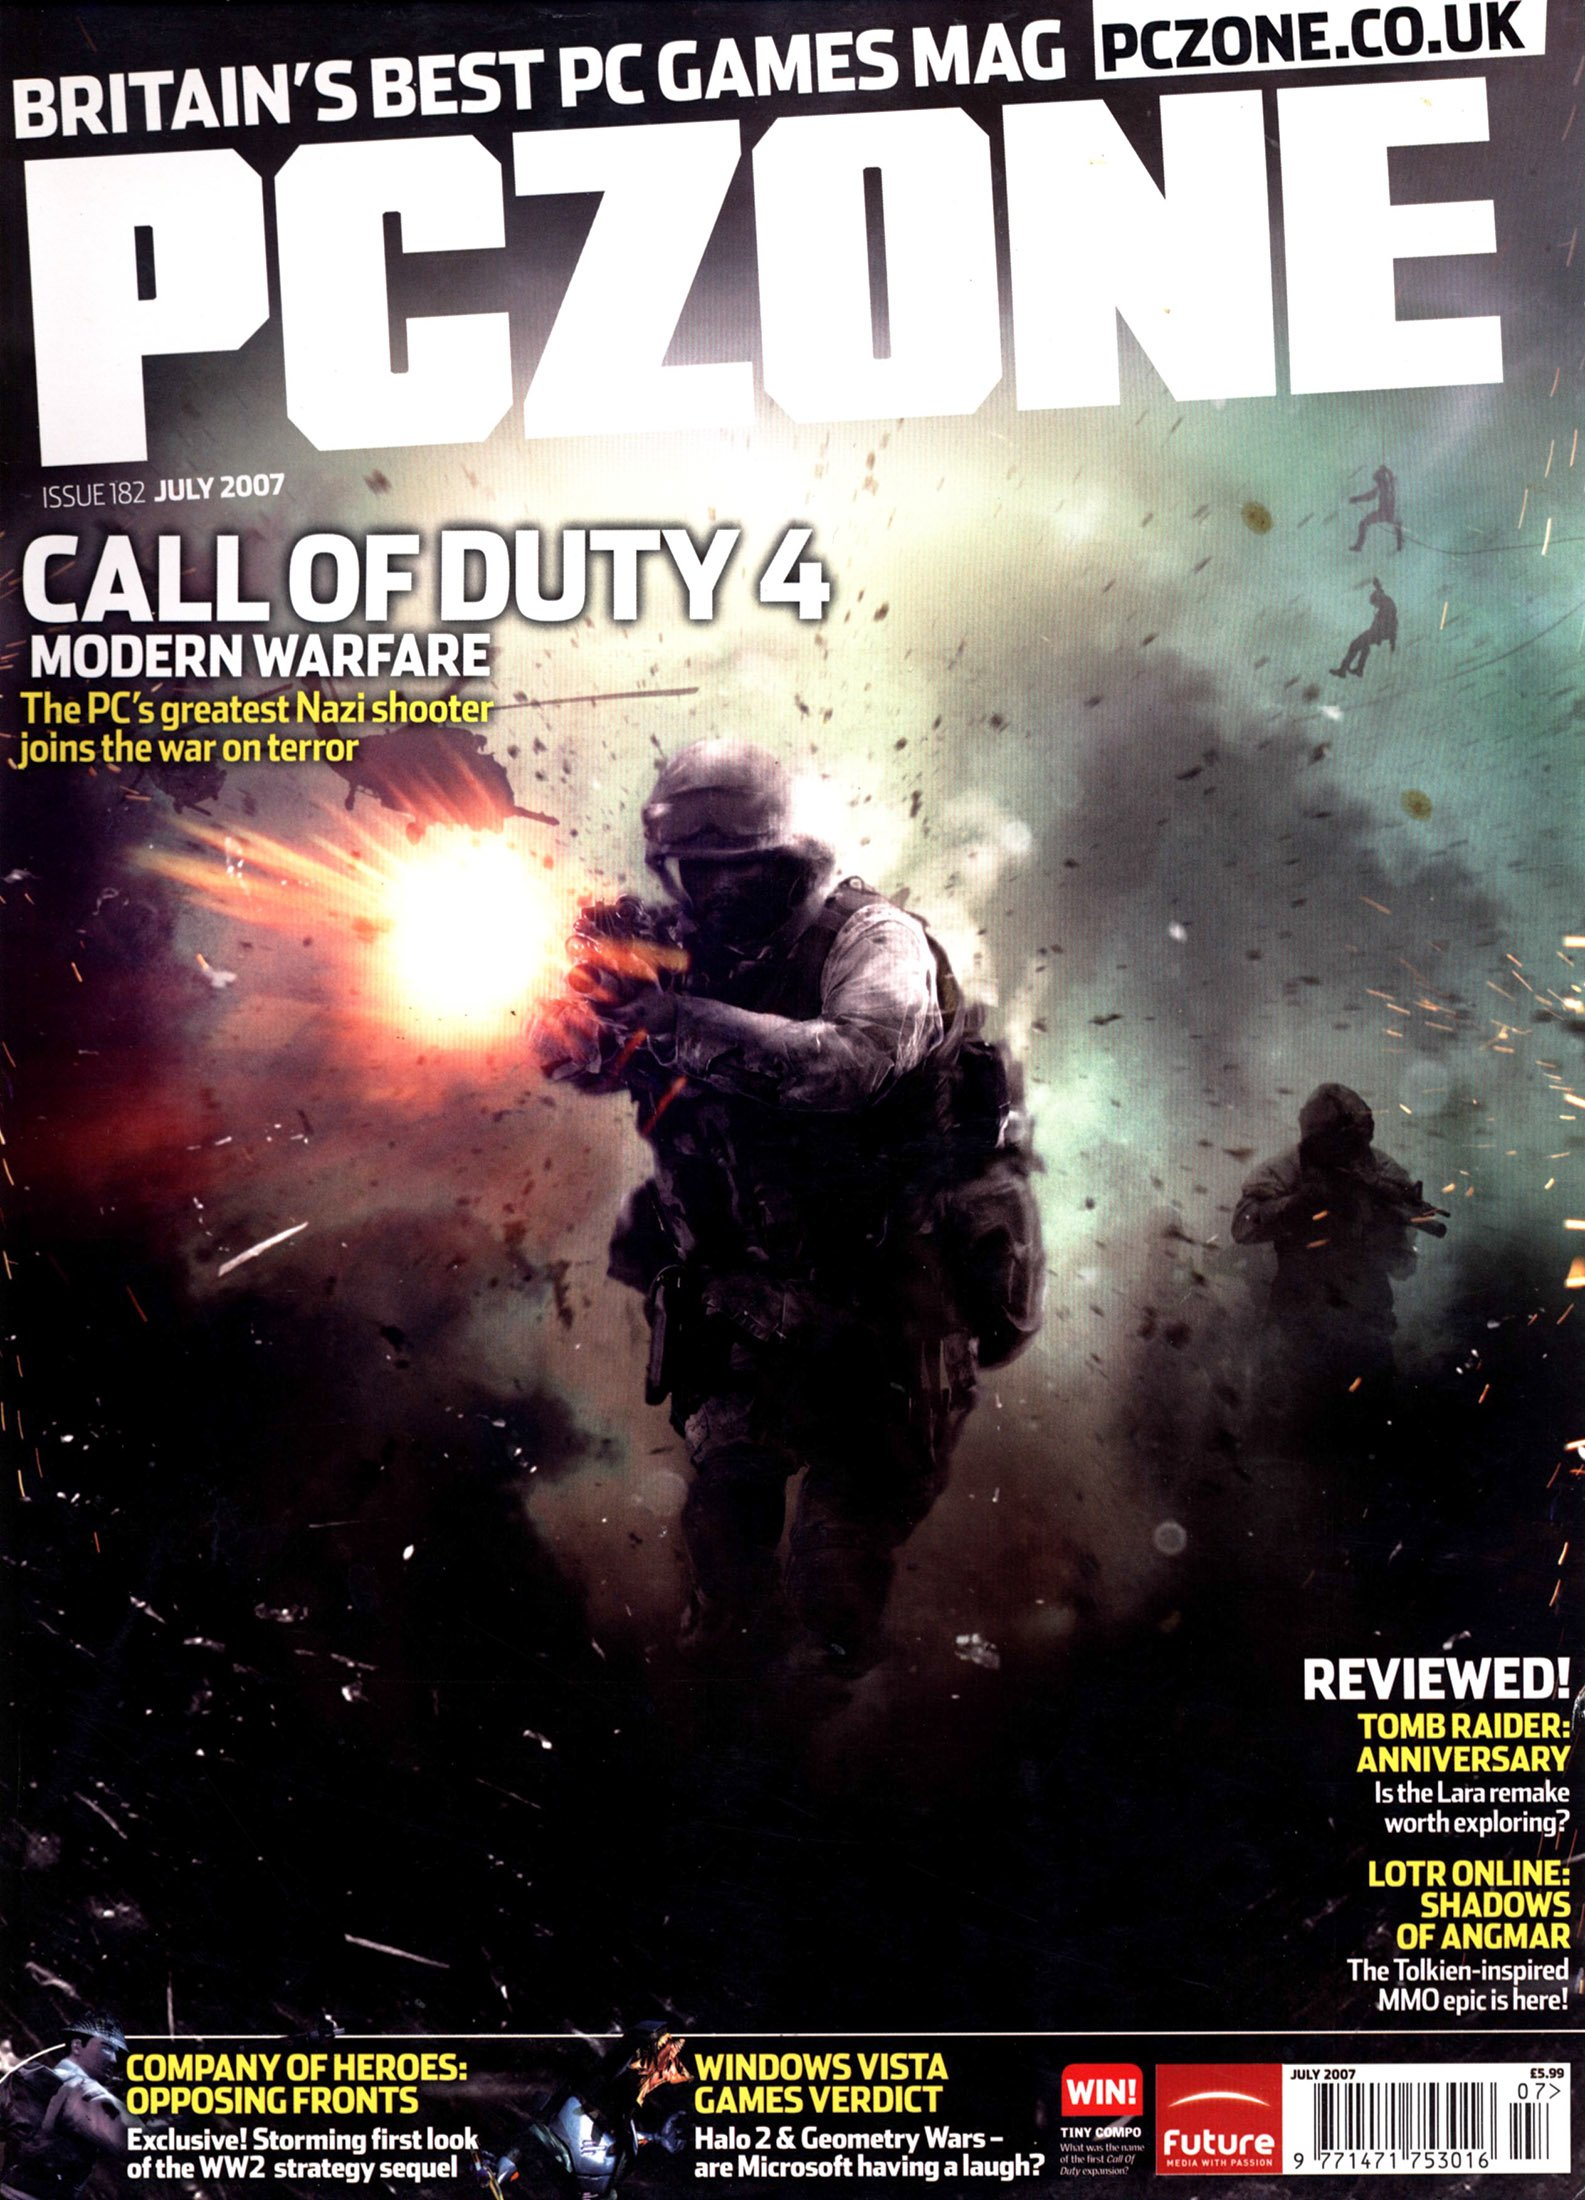 PC Zone Issue 182 (July 2007)